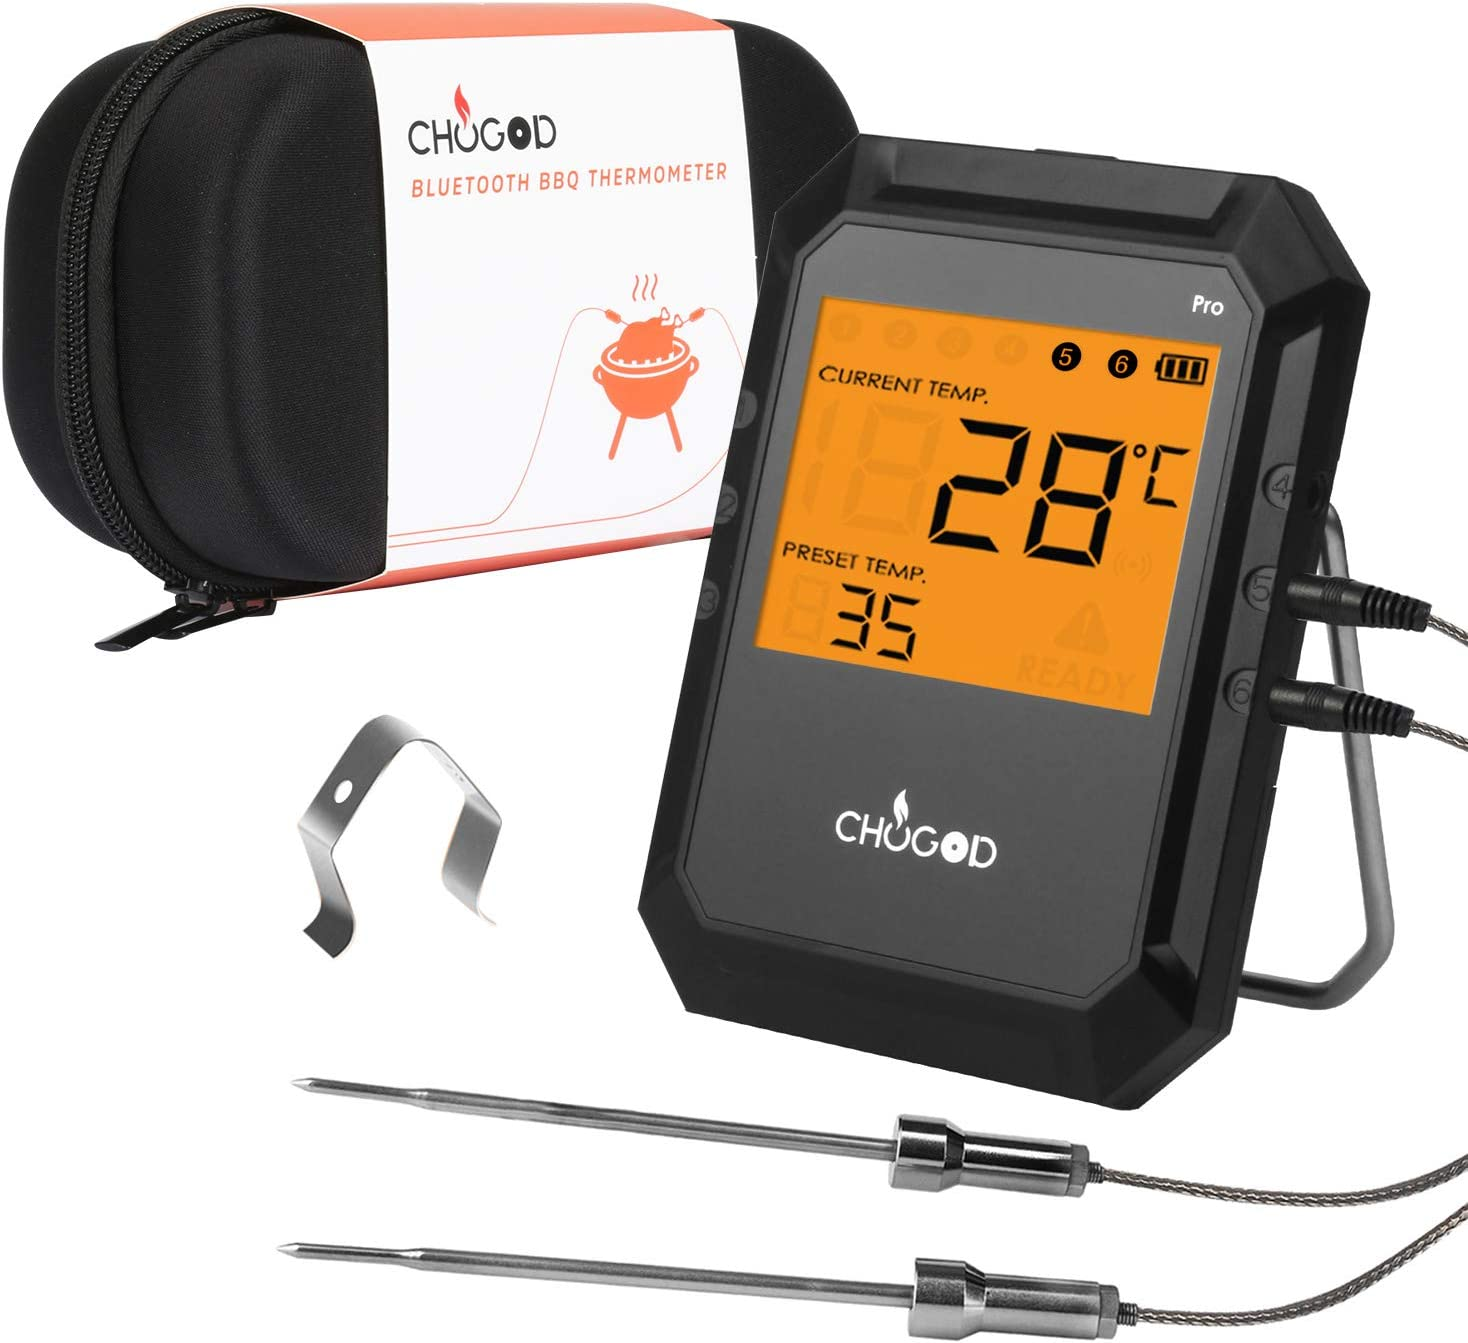 BBQ Meat Thermometer, Bluetooth Remote Cooking Thermometer, Digital Oven Thermometer with 6 Probe Port for Smoker Grilling (Black)